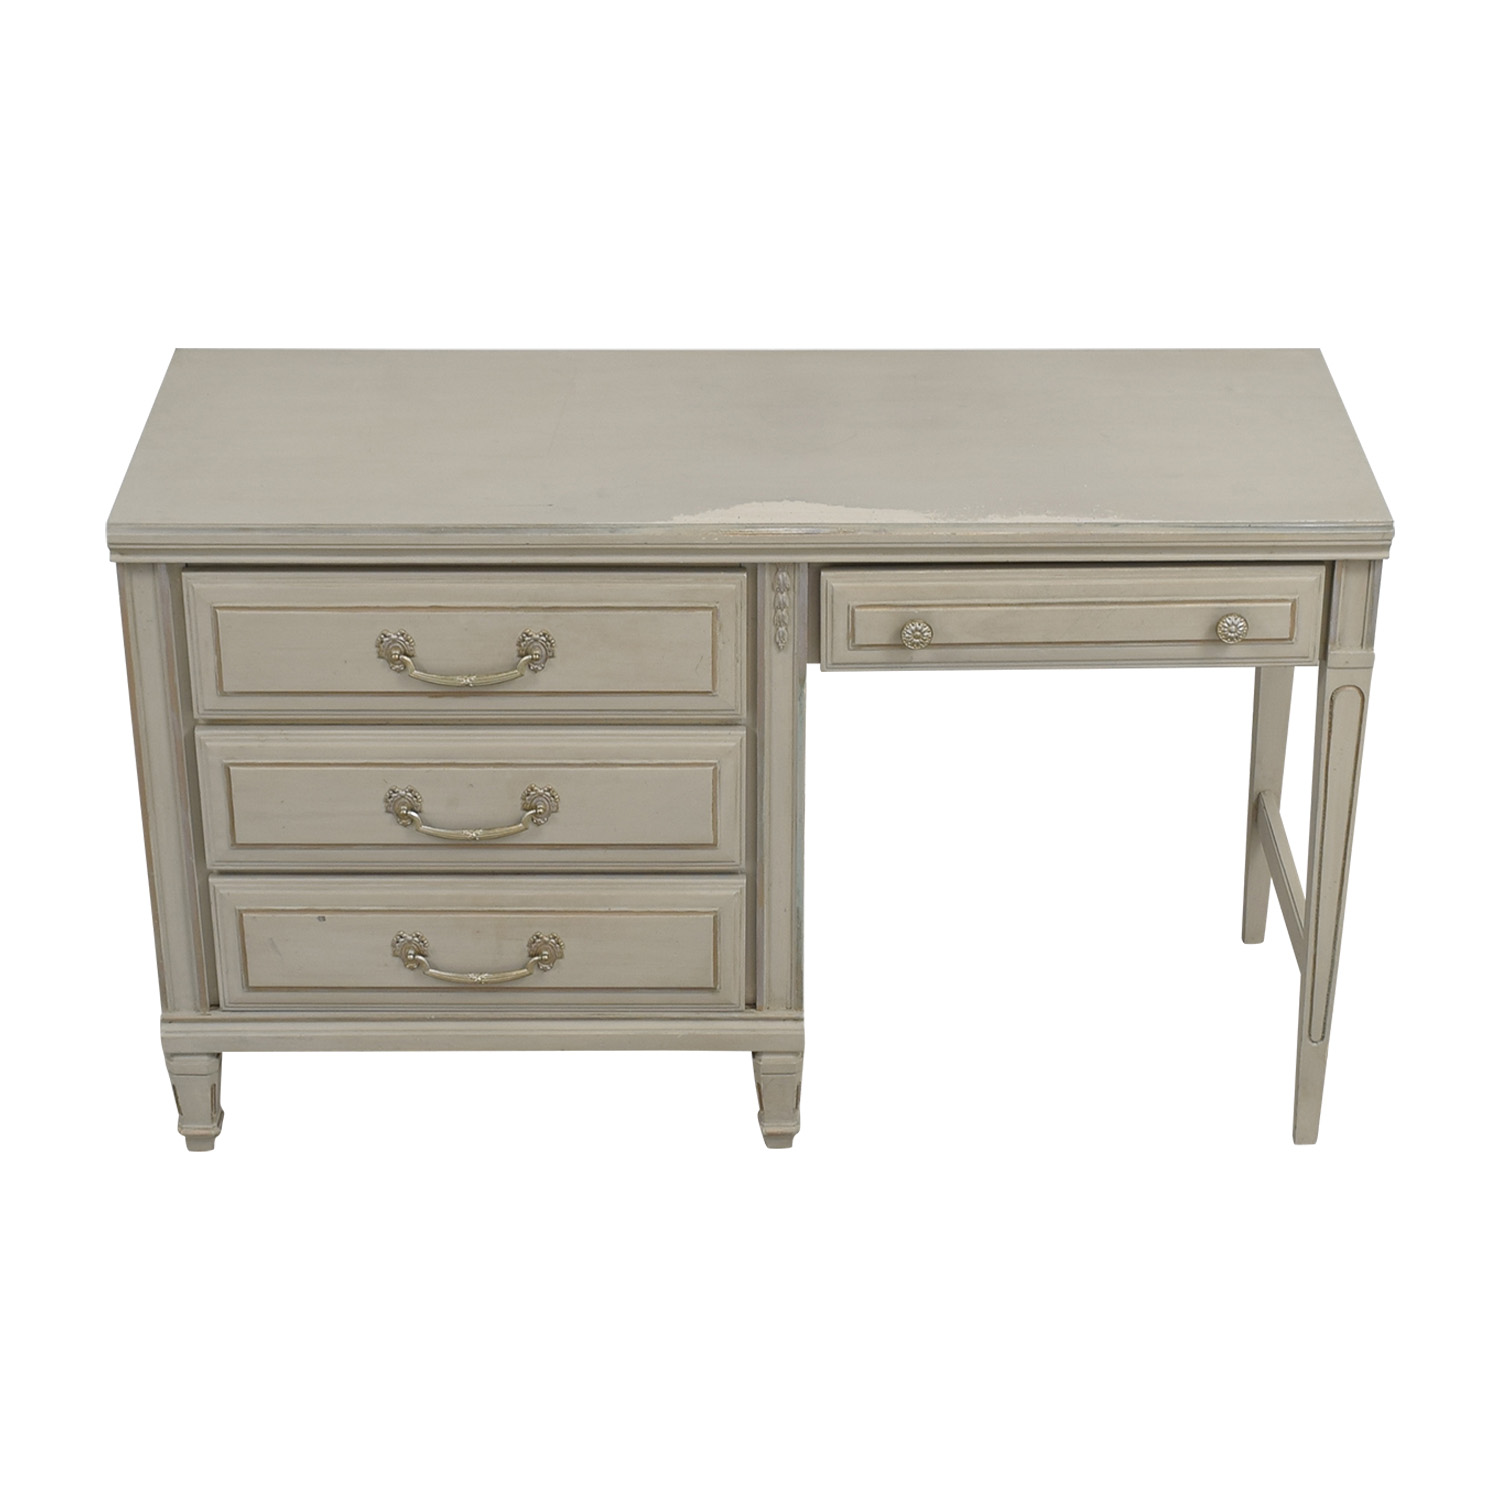 Vintage Painted Grey Four-Drawer Desk sale